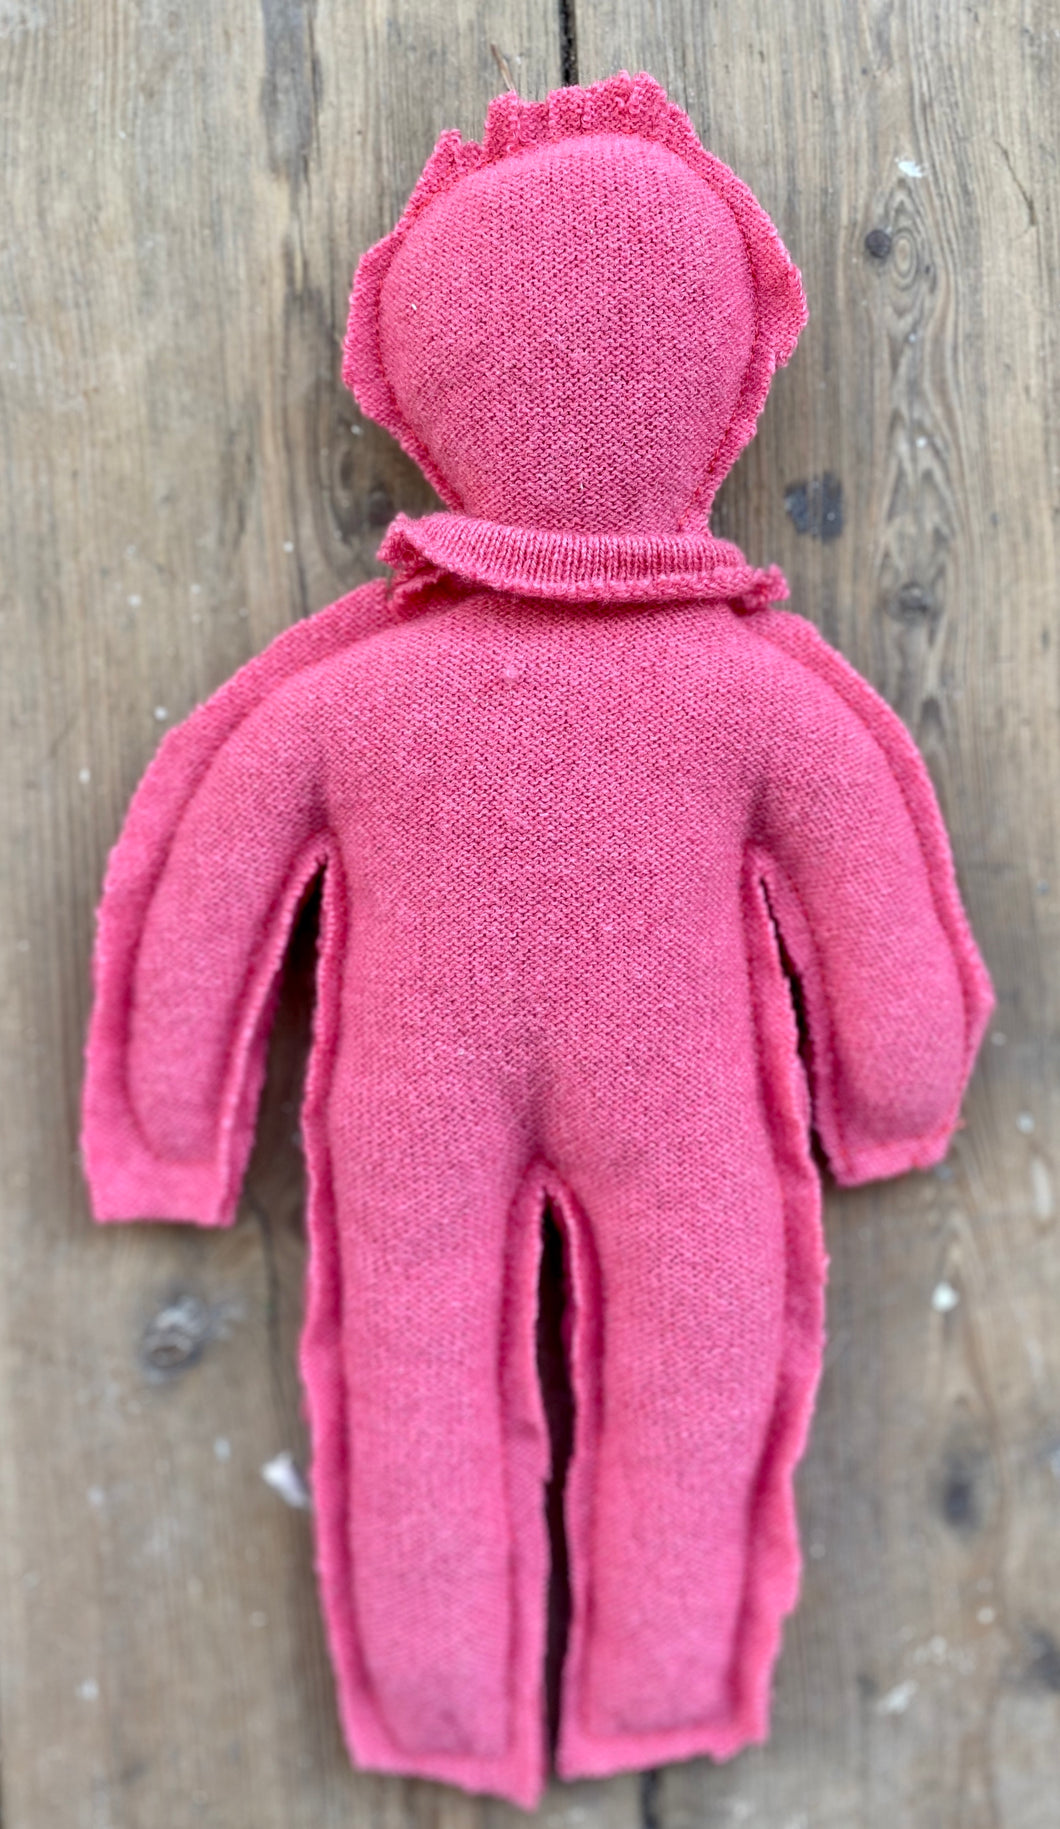 Pink Circulair doll made from a recycled pullover 100% cashmere